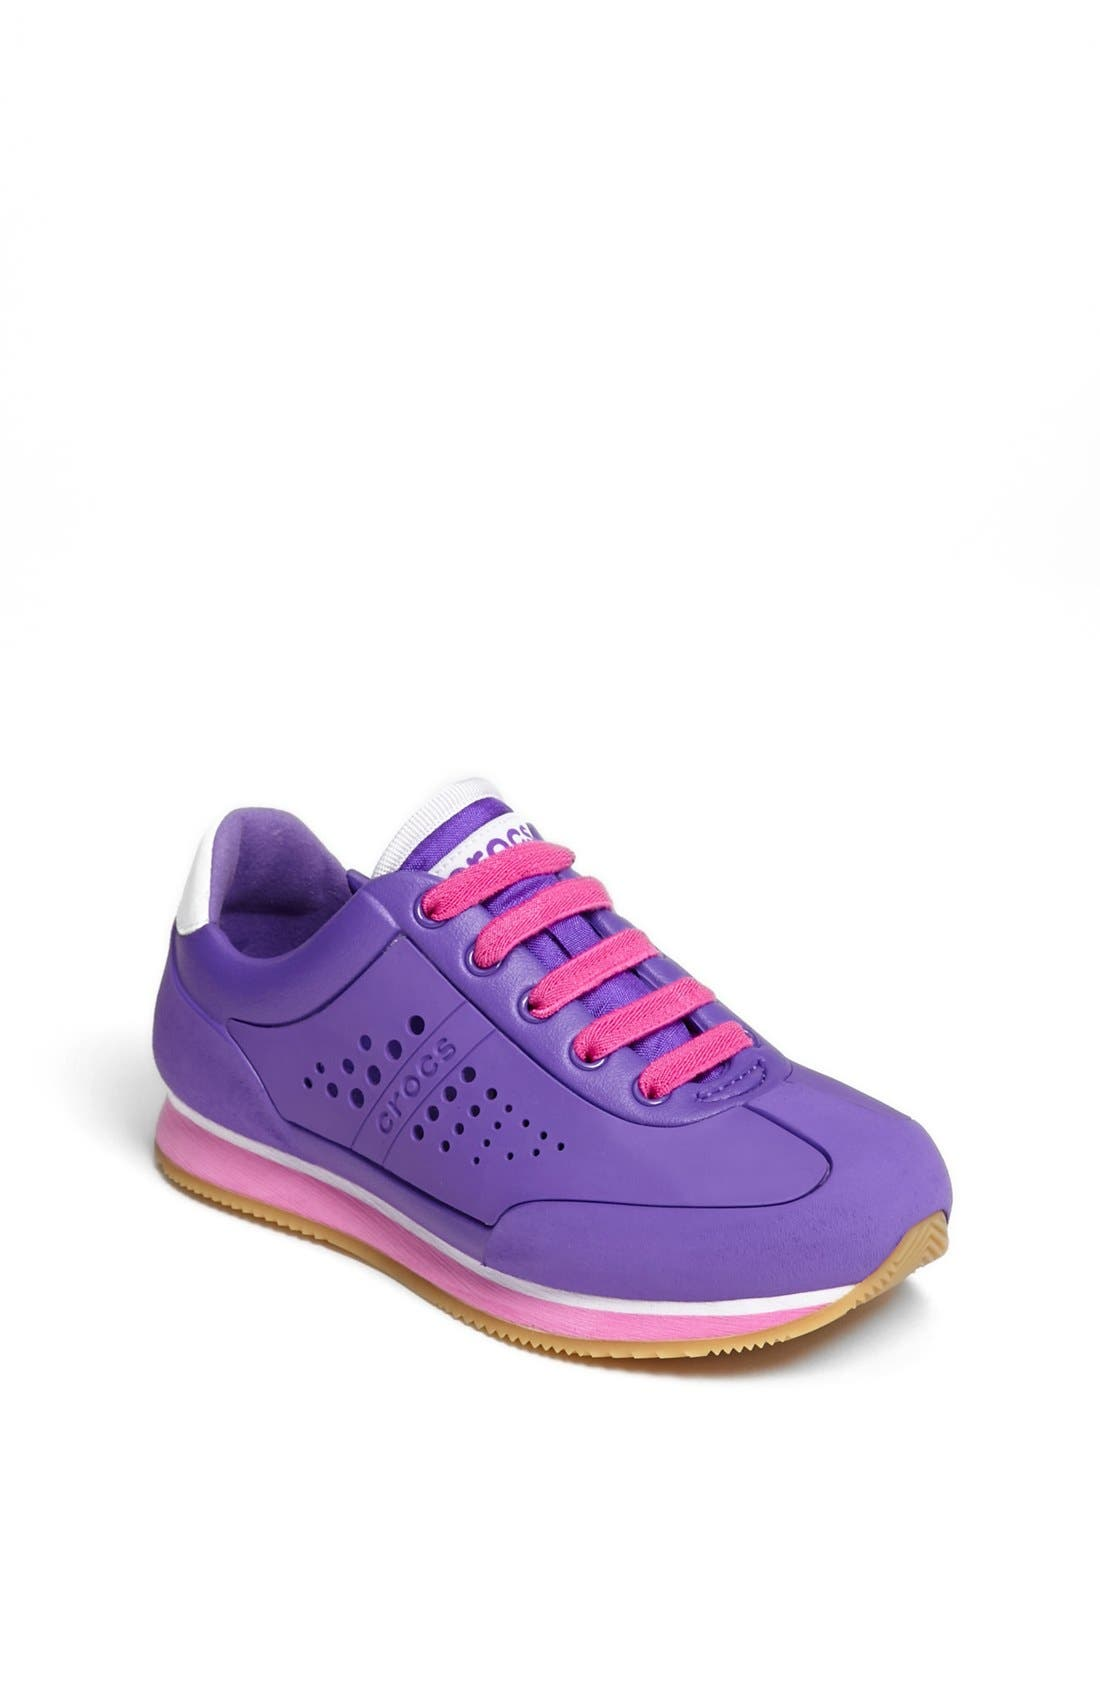 Alternate Image 1 Selected - CROCS™ 'Retro' Sneaker (Little Kid & Big Kid)